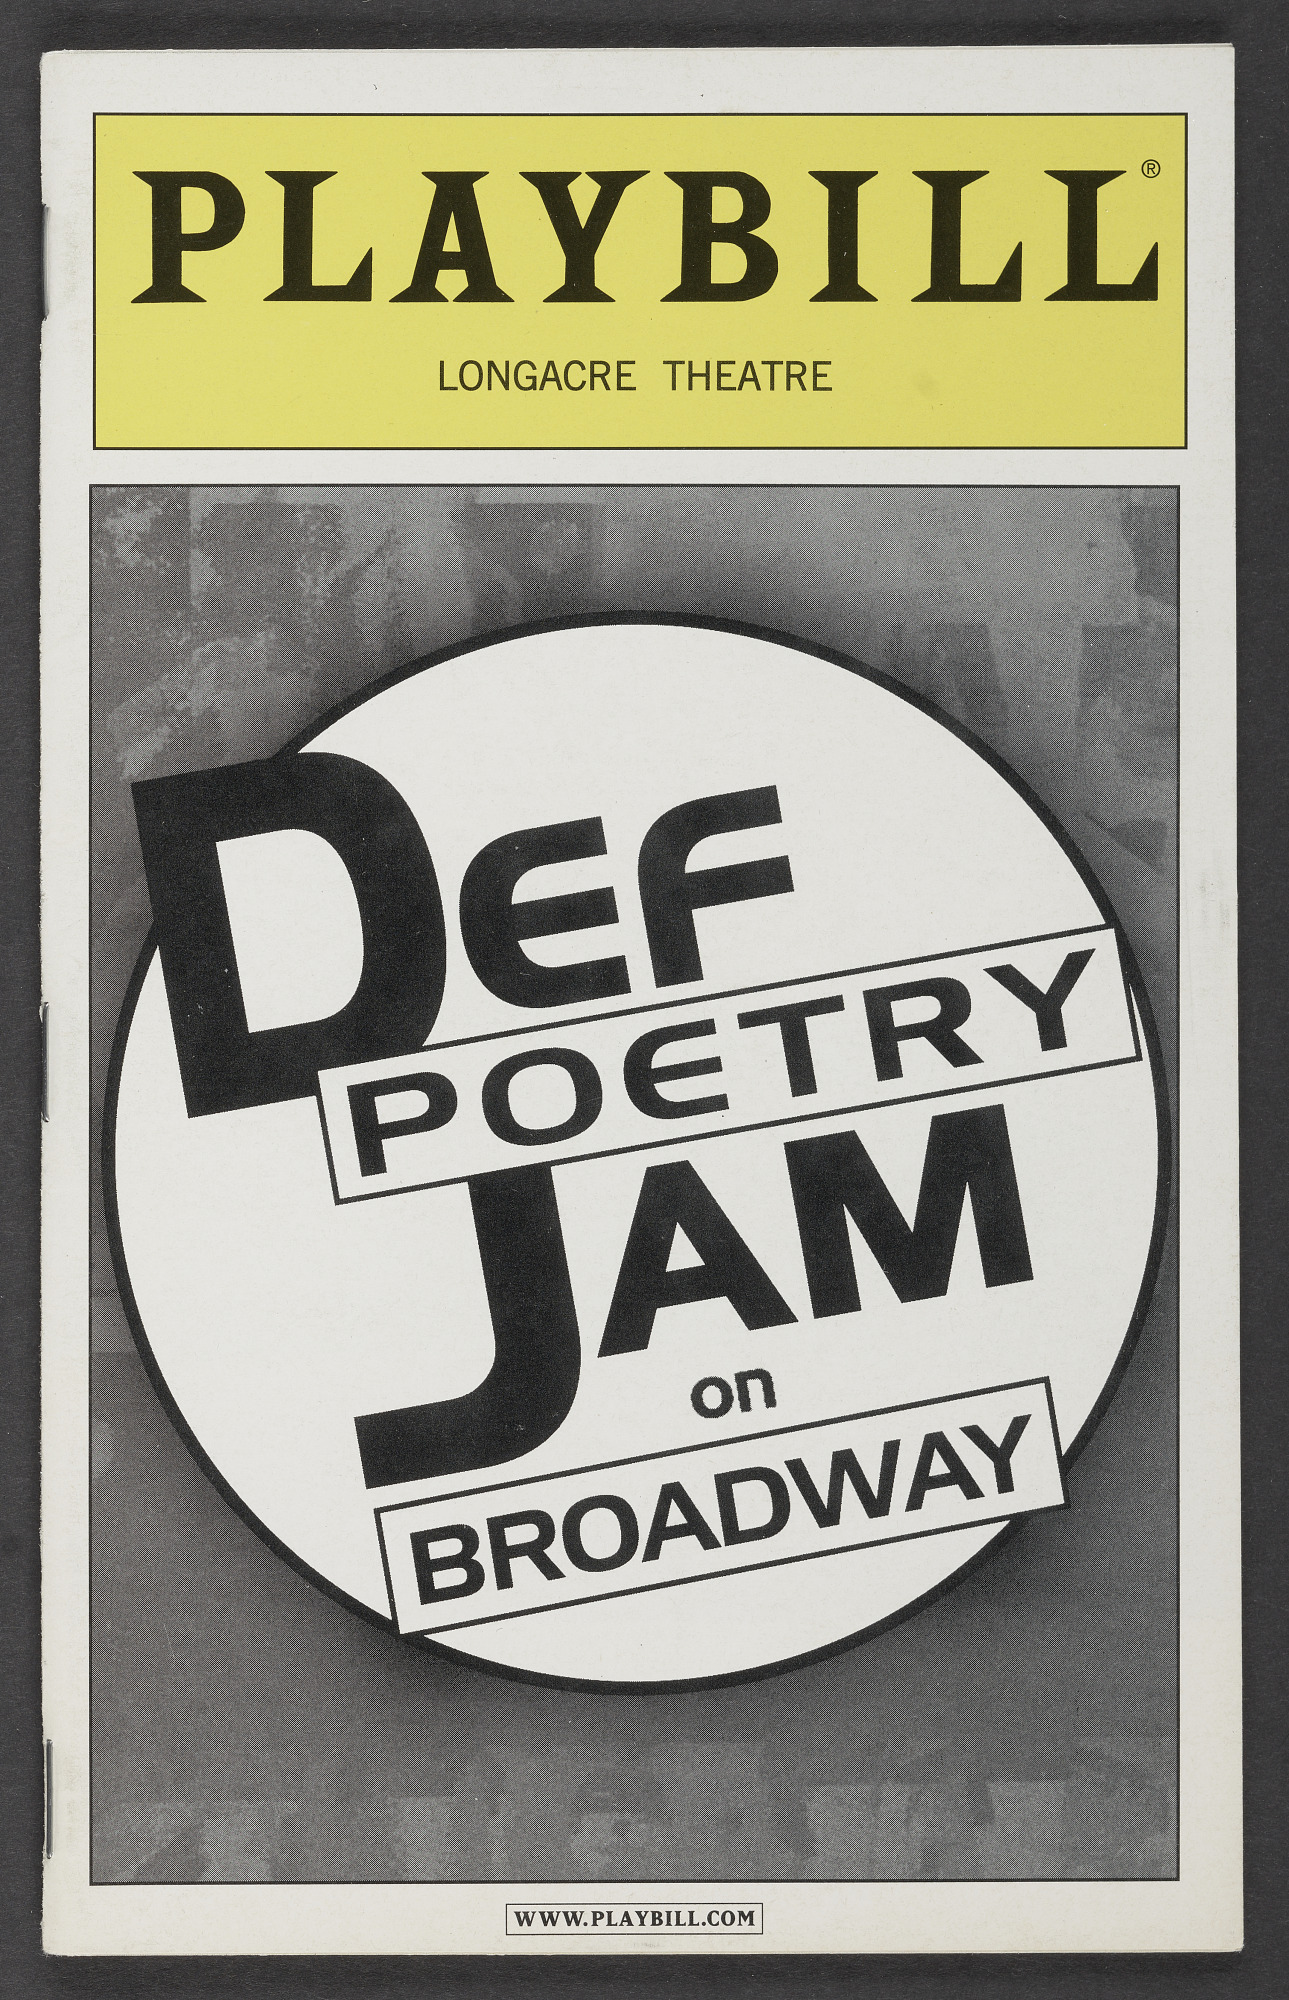 Playbill for Def Poetry Jam on Broadway